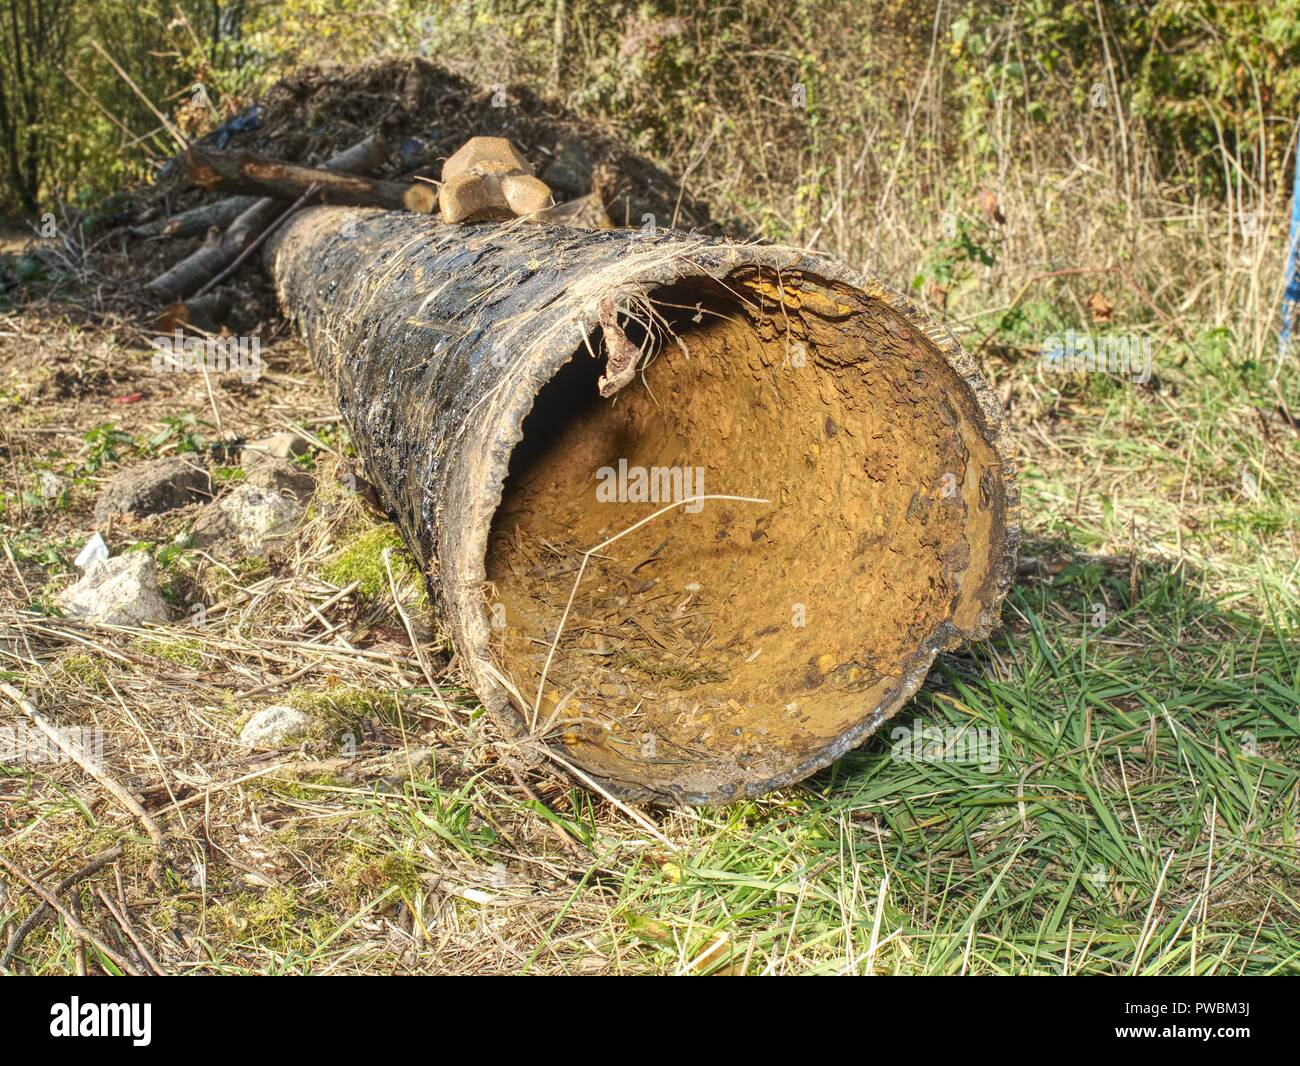 Long metal pipe laying on ground. Broken rusty steel tube. Open trench with water pipe and heap of ground near. - Stock Image